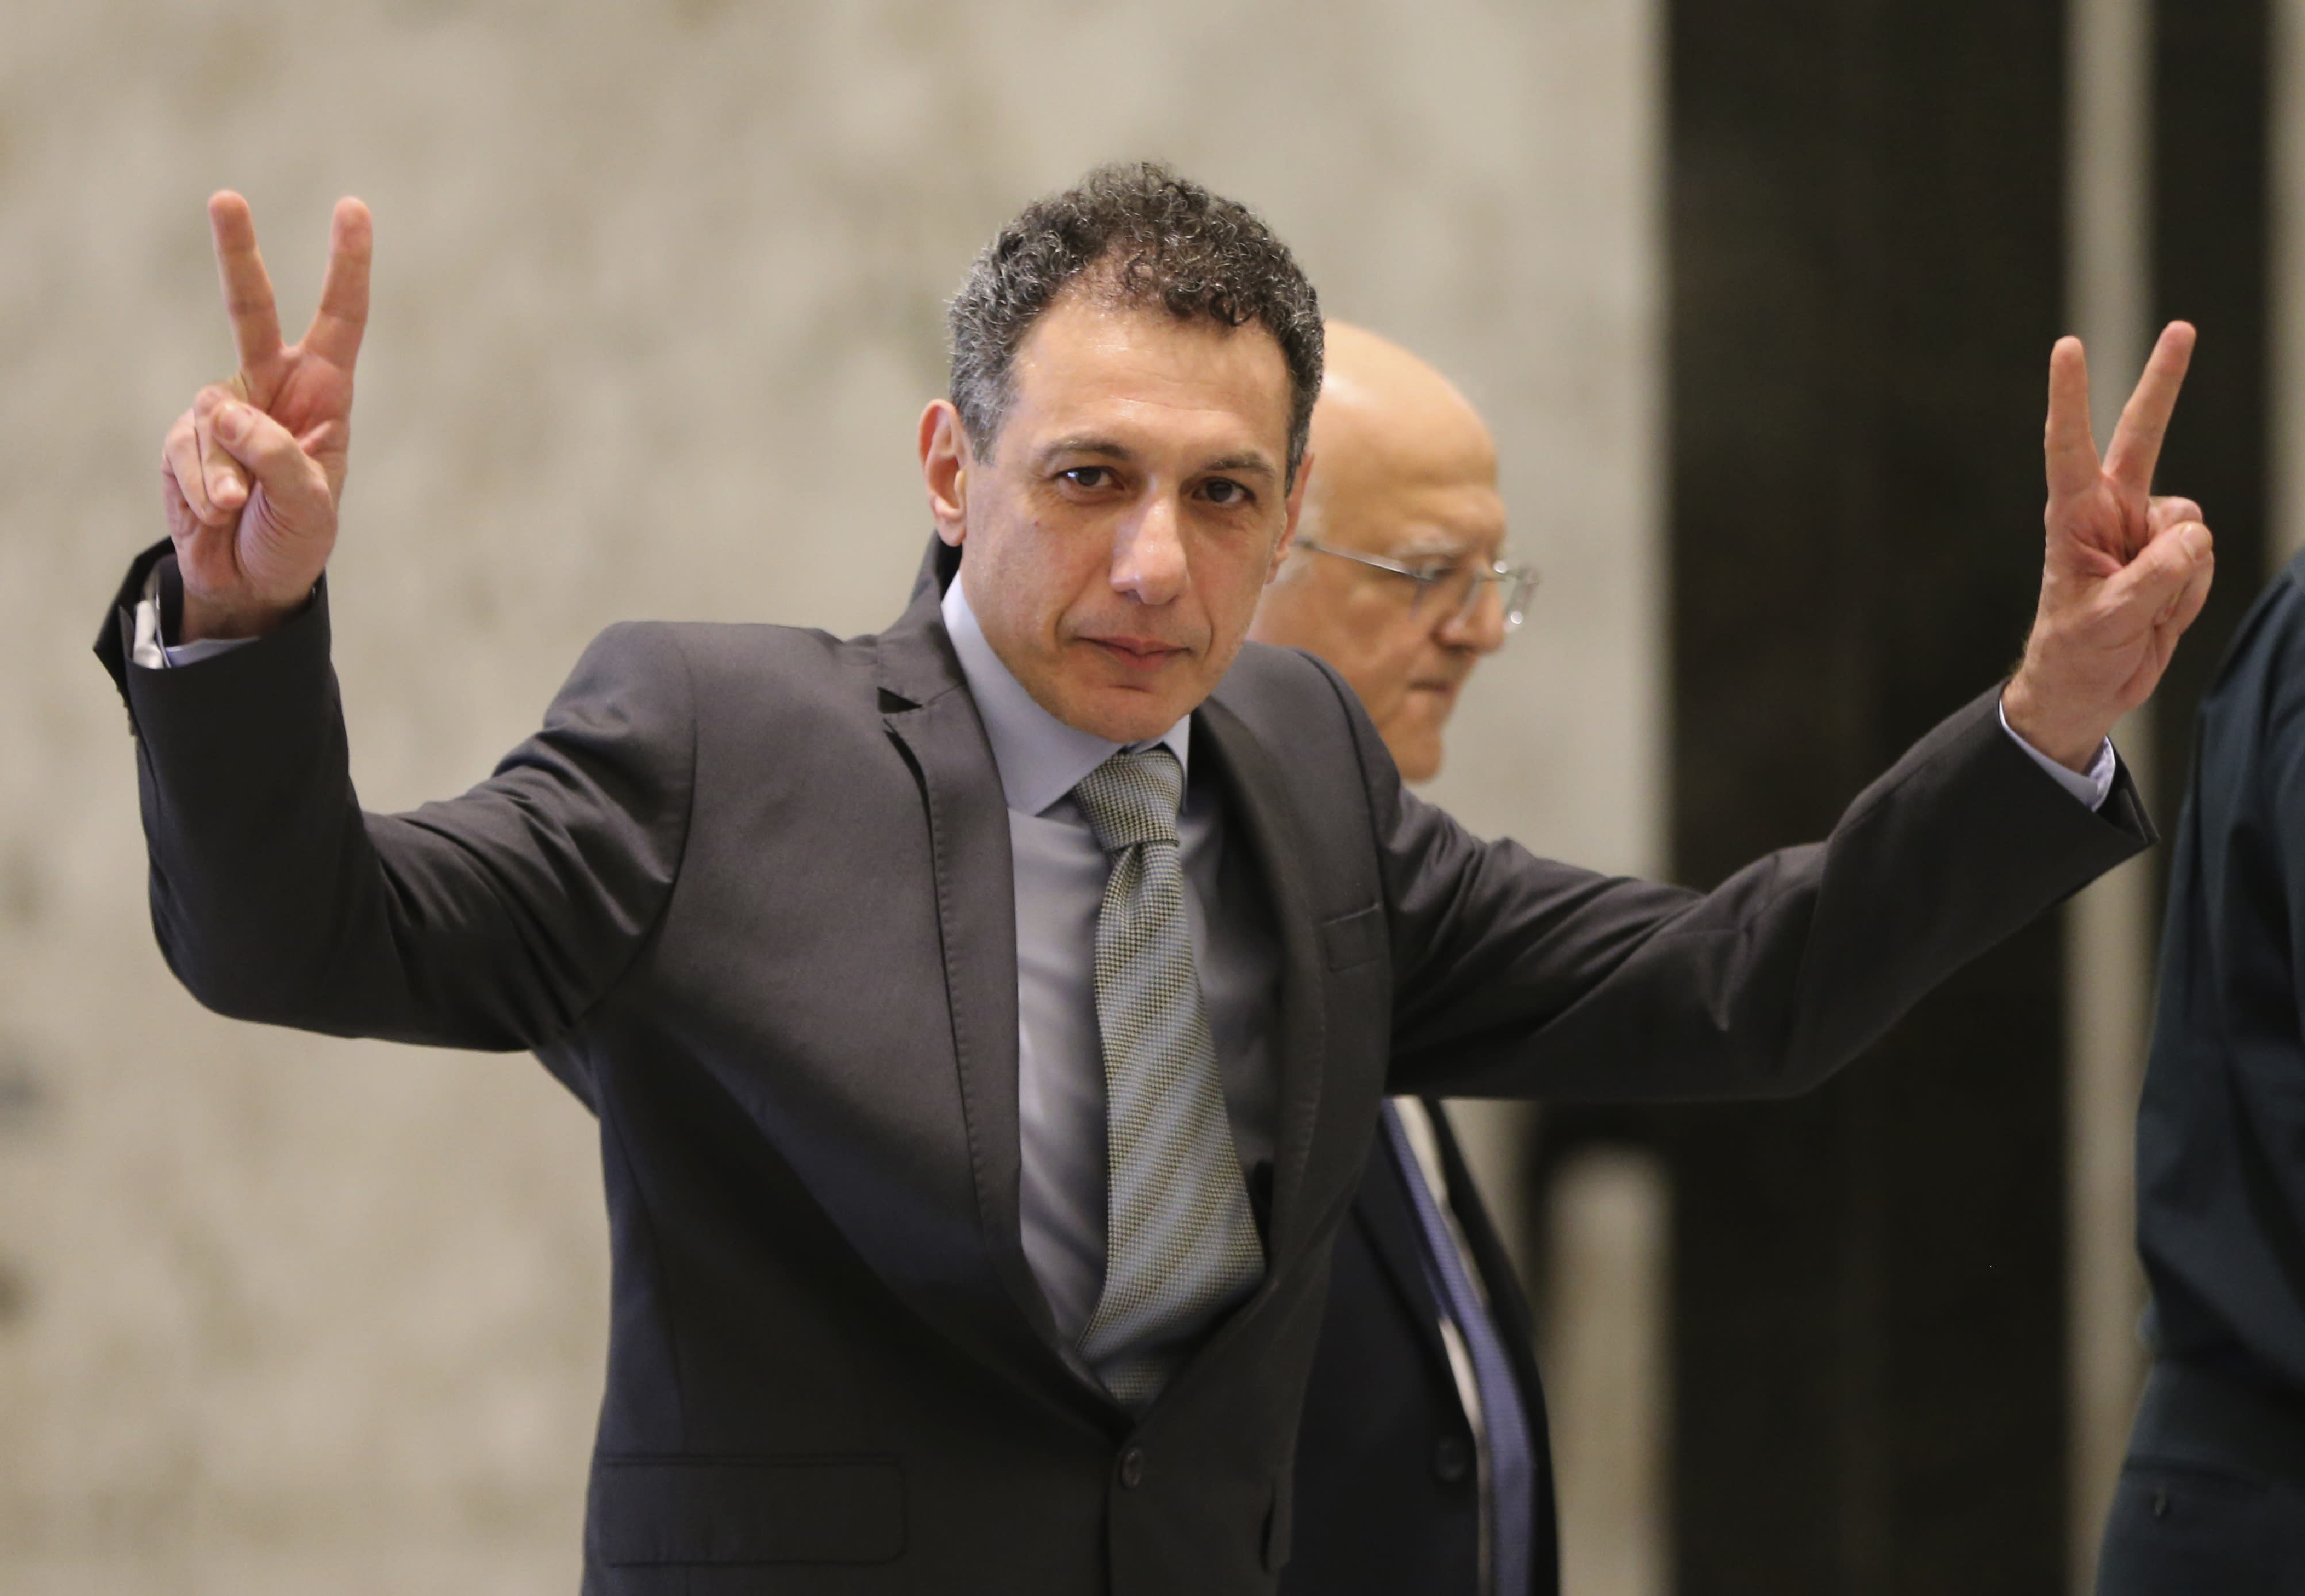 Nizar Zakka, a Lebanese citizen and U.S. permanent resident, who was released in Tehran after nearly four years in jail on charges of spying, flashes victory signs upon his arrival at the presidential palace, in Baabda, east of Beirut, Tuesday, June 11, 2019. Zakka a Lebanese businessman was allowed to fly to Lebanon, a development that comes amid heightened tensions between Iran and the U.S. after President Donald Trump withdrew America from Tehran's nuclear deal with world powers. (AP Photo/Hussein Malla)